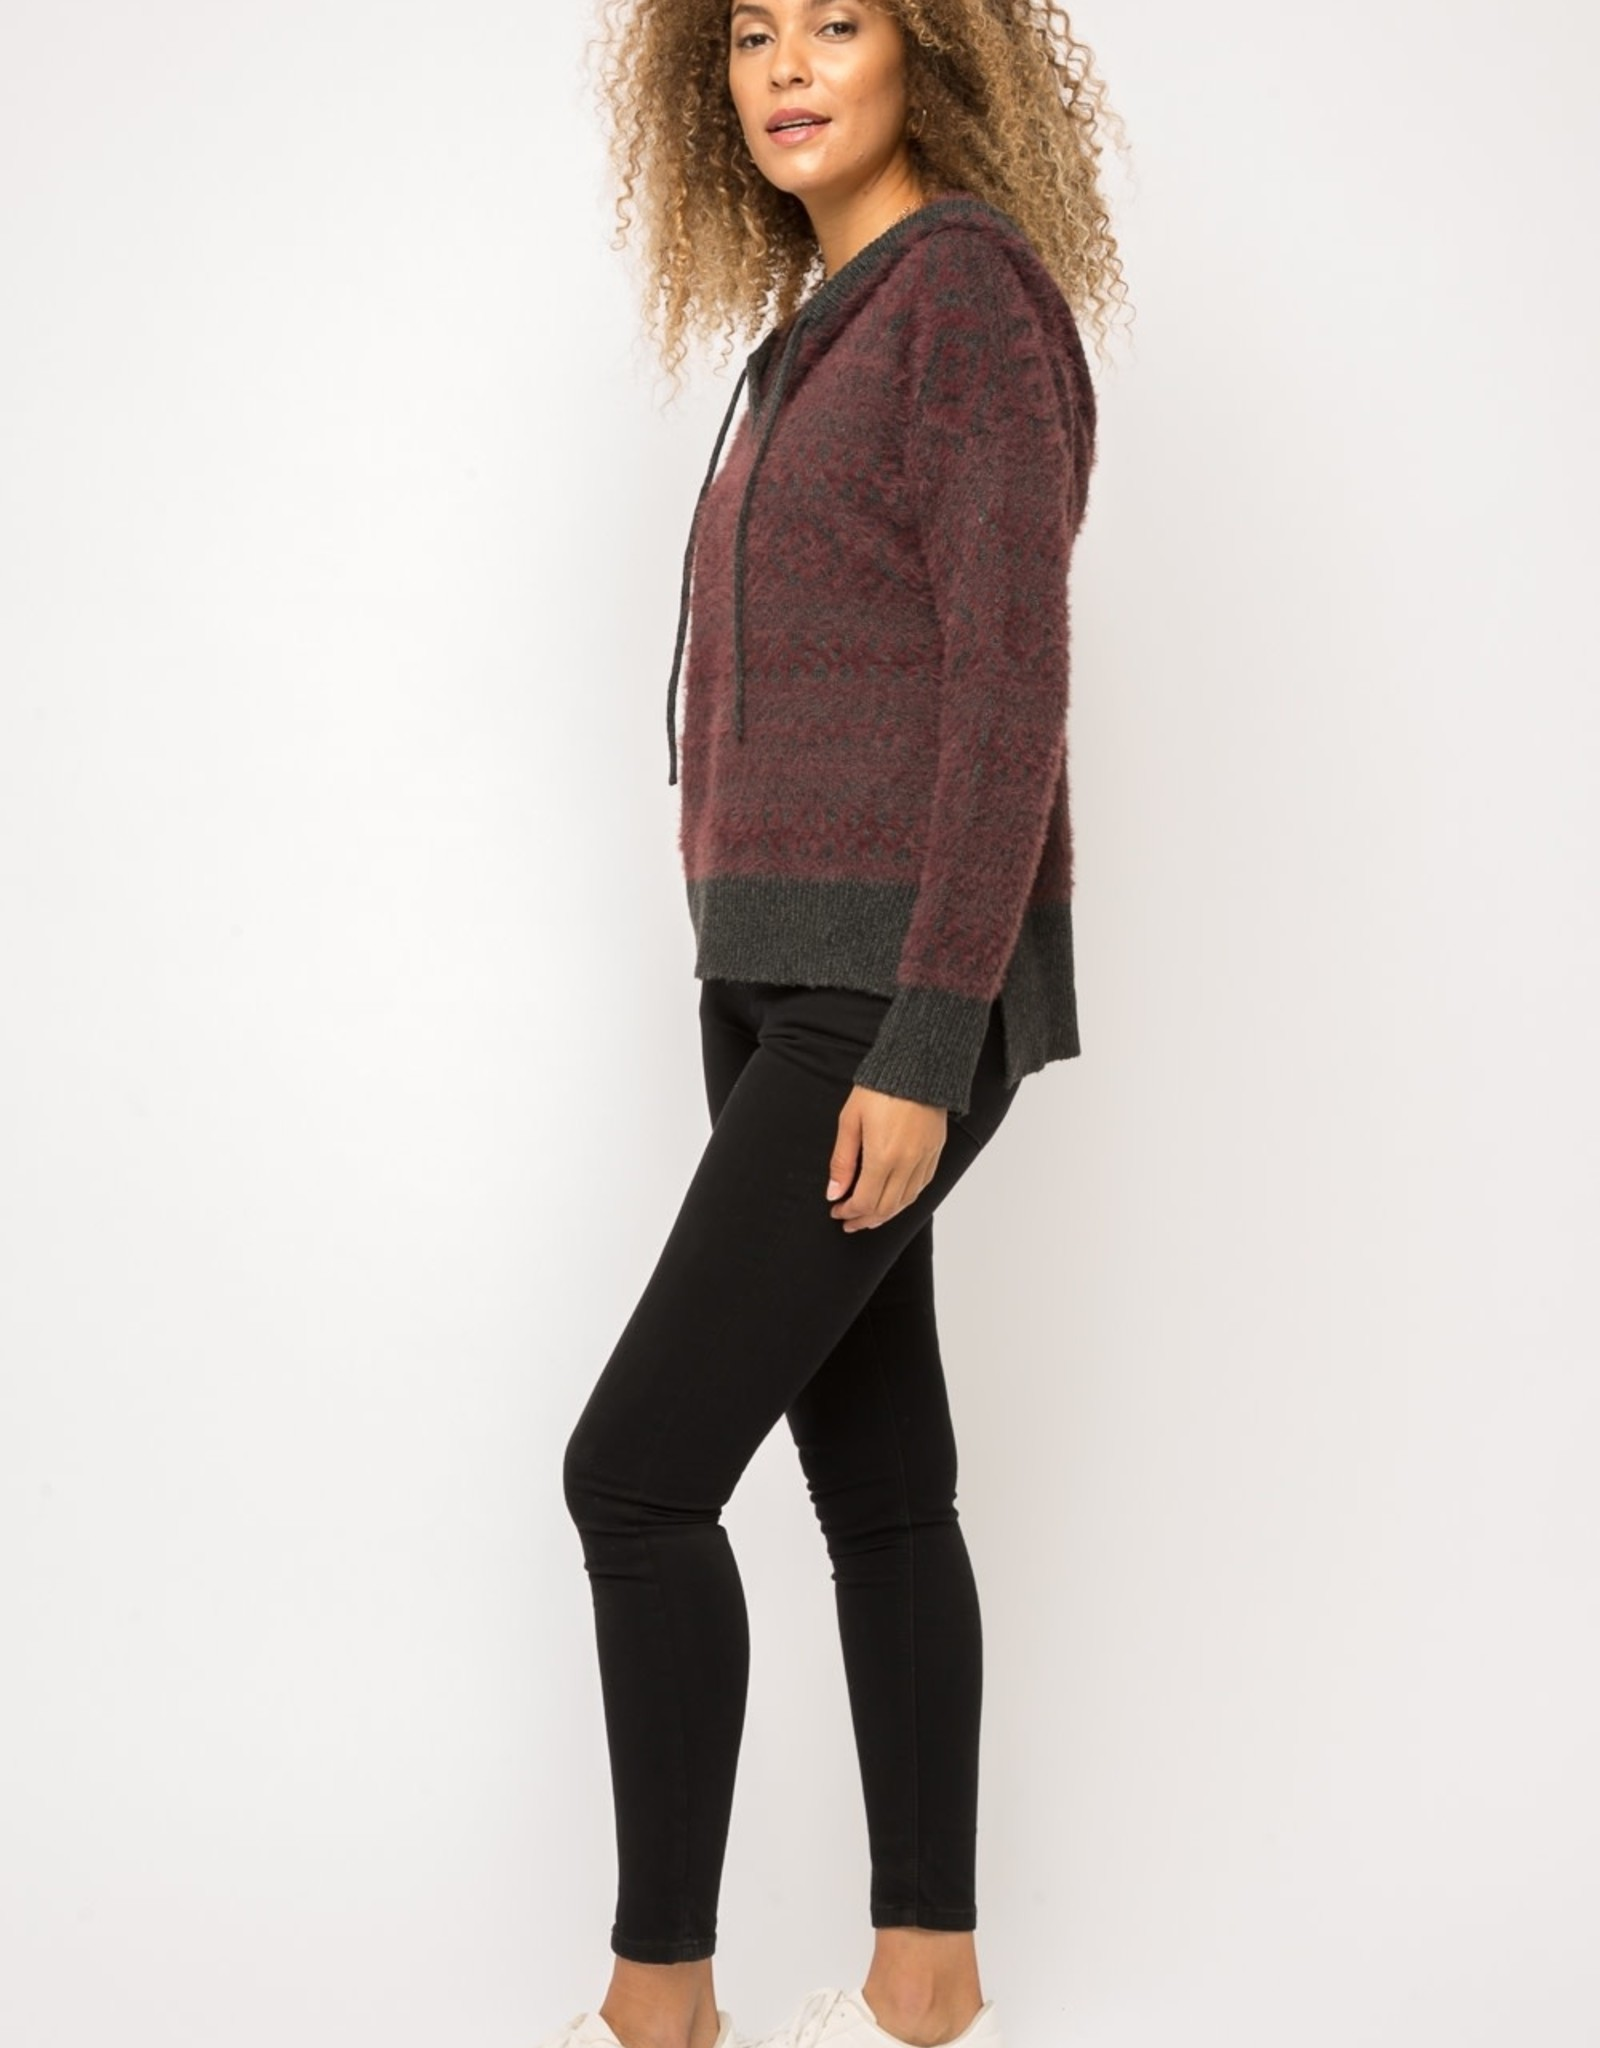 Soft hooded sweater